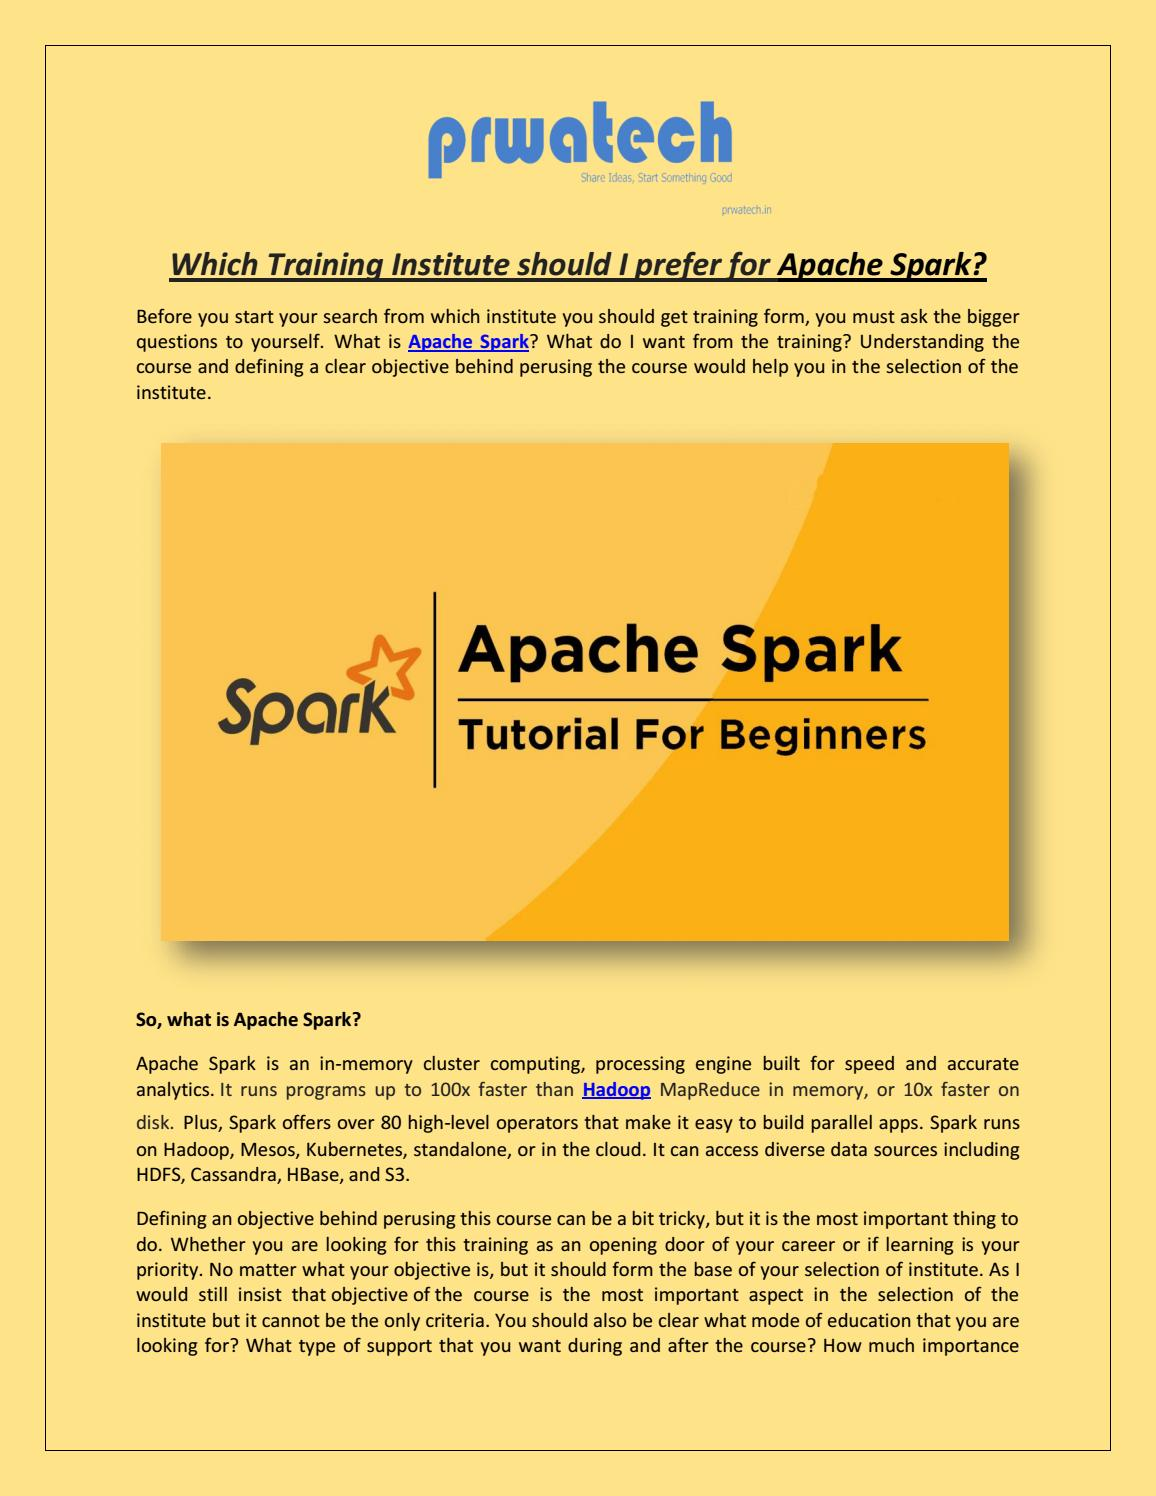 Apache spark training institute by Prwatech - issuu